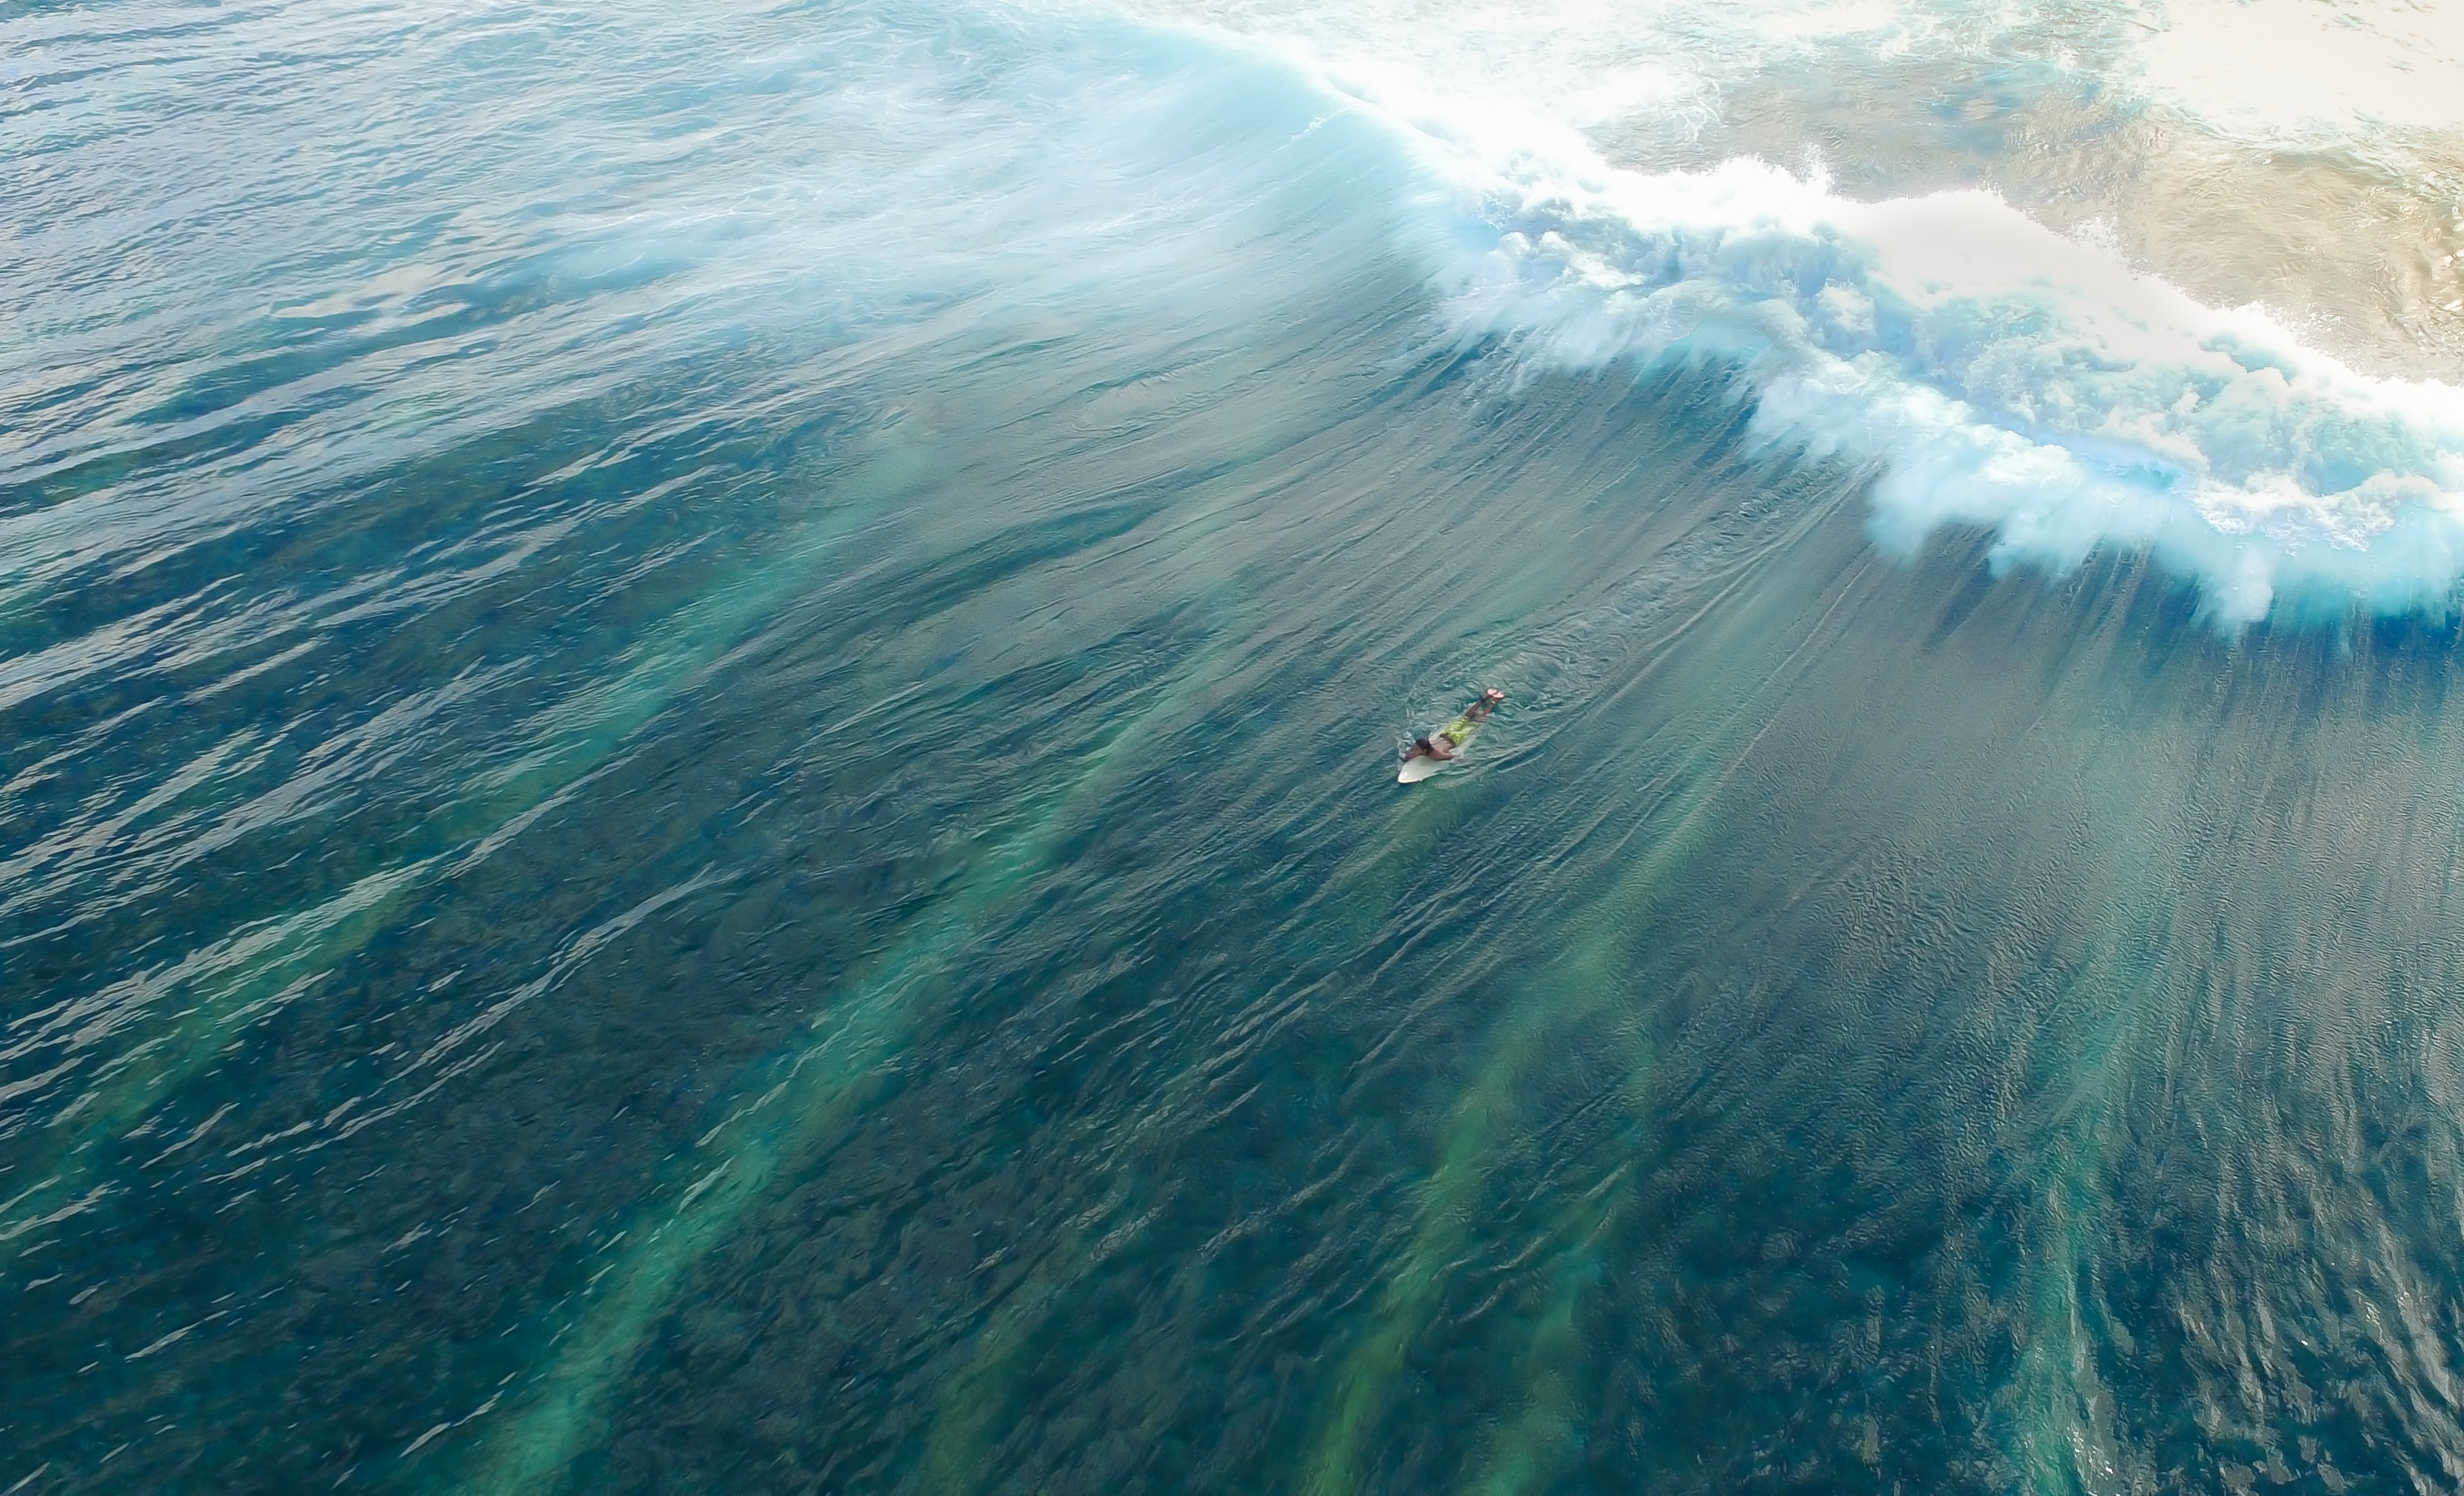 An overhead drone shot of a surfer in the water as the waves break behind him in Male, Maldives